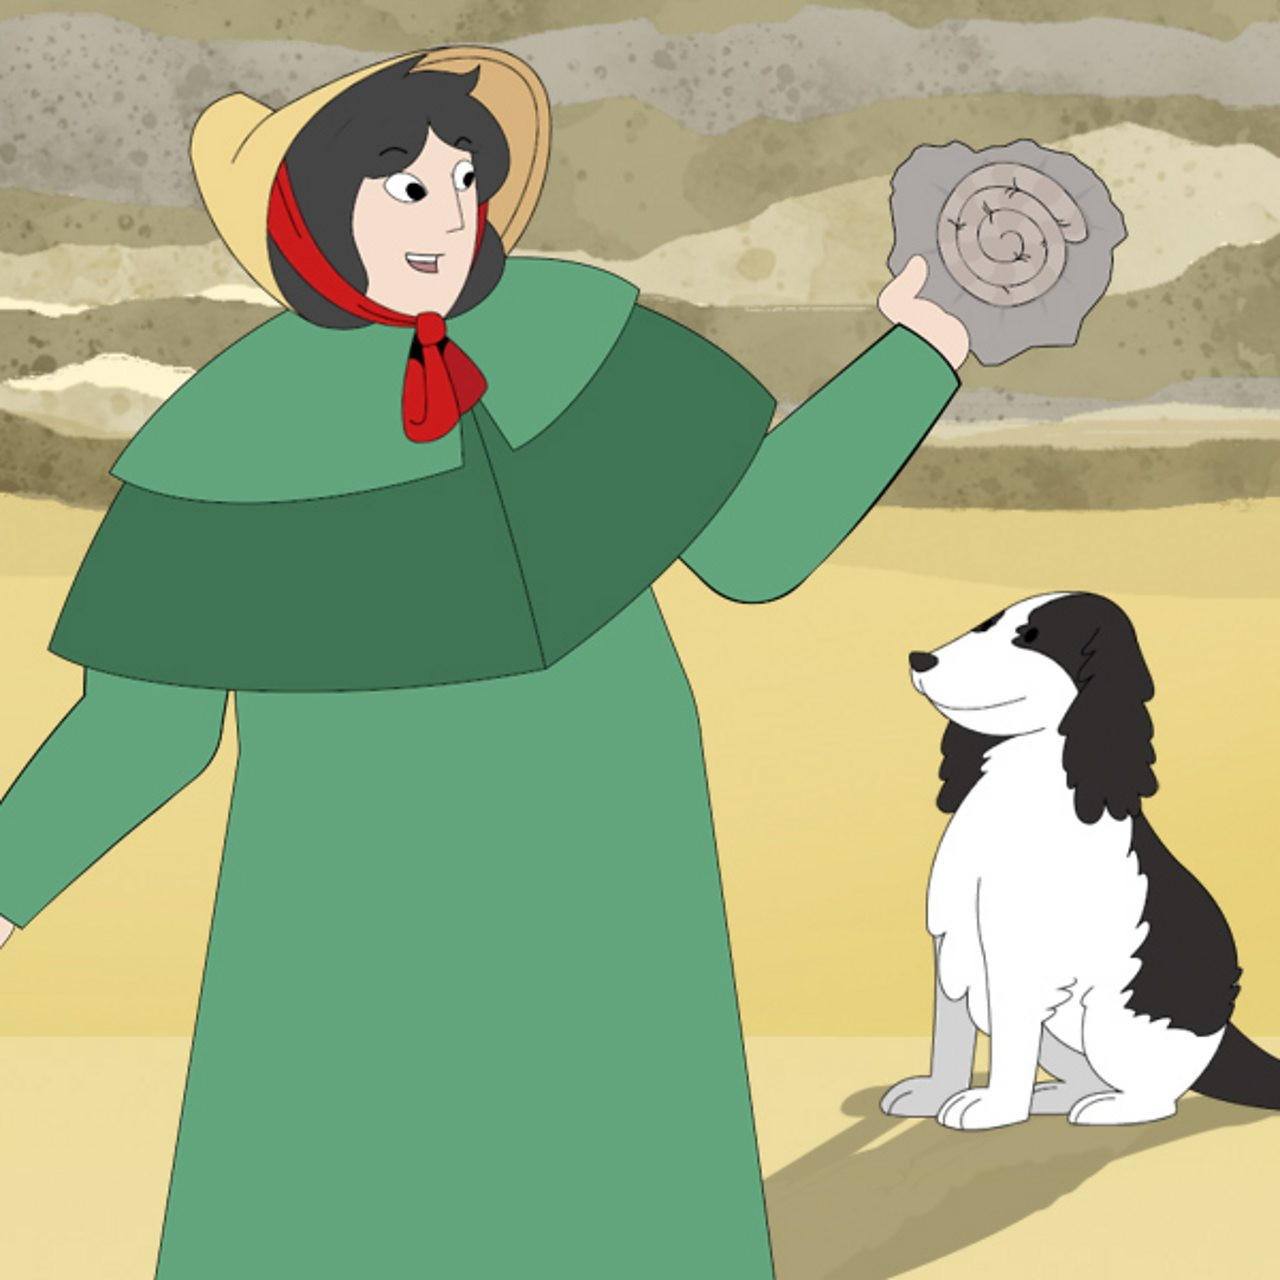 Mary Anning smiling holding a fossil on a beach, with her dog.